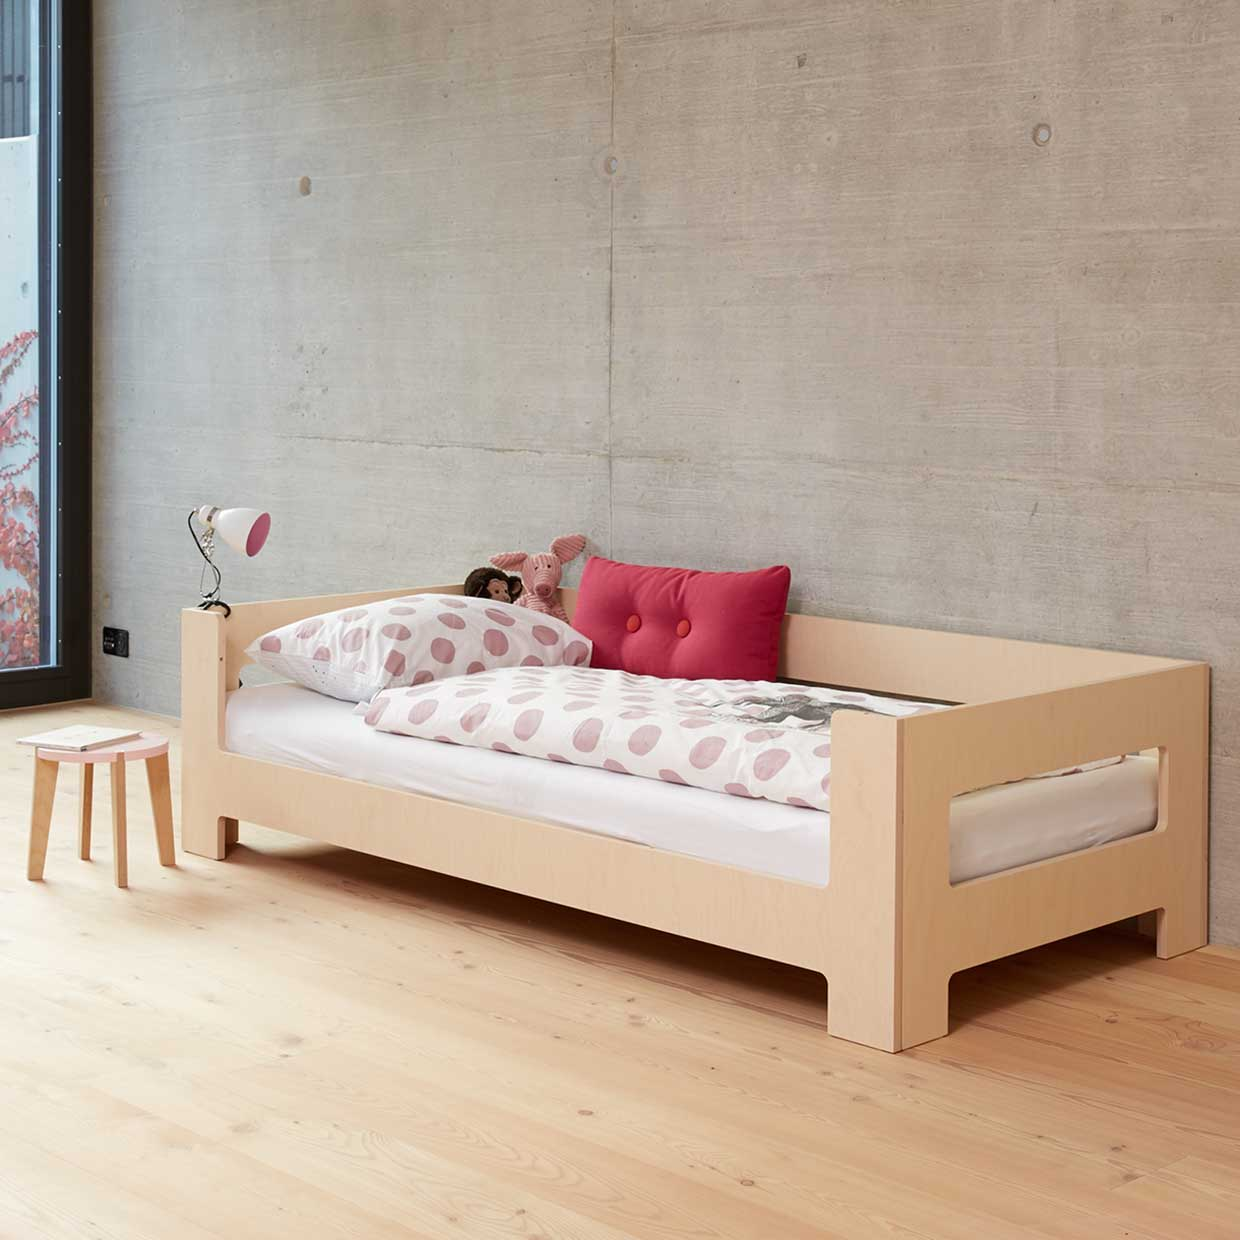 LULLABY by blueroom | growing bed & loft bed for children